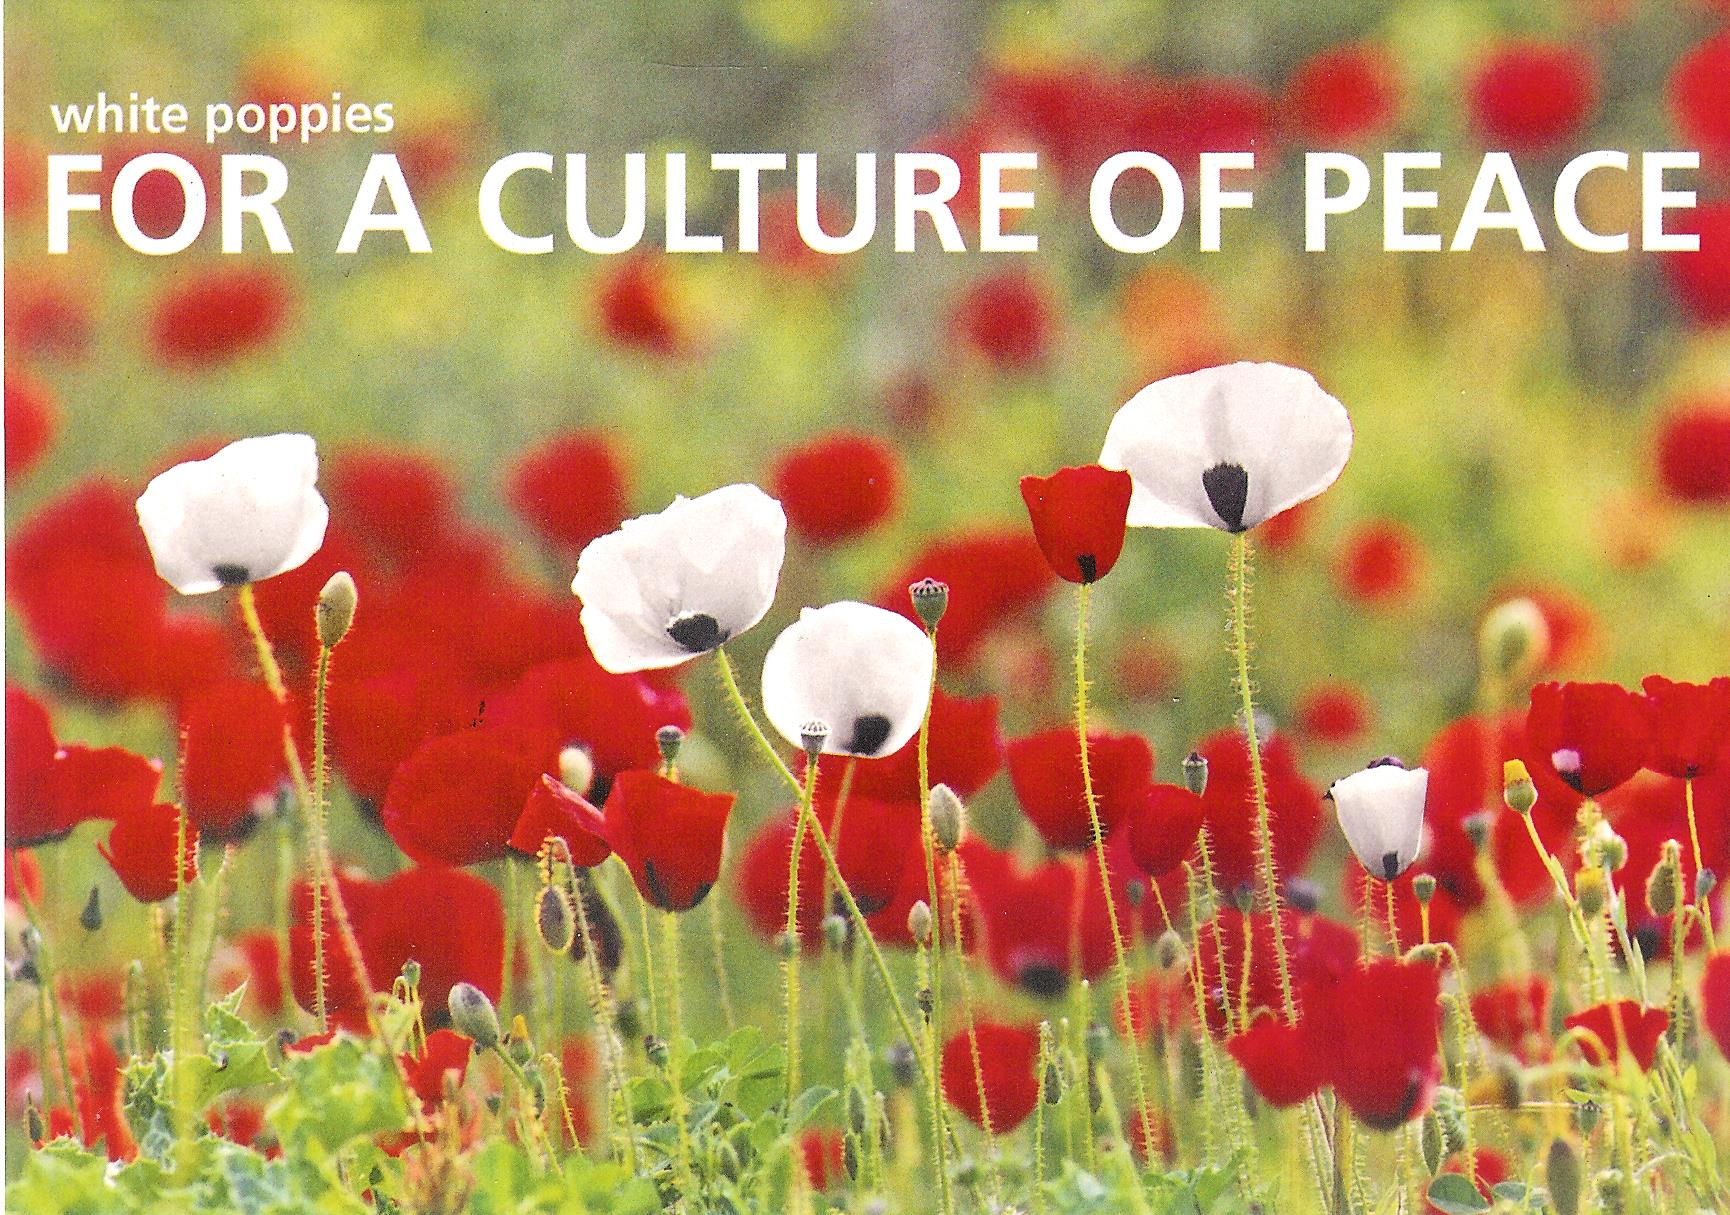 "Postcard of a field of red and white poppies with text ""White poppies for a culture of peace""."